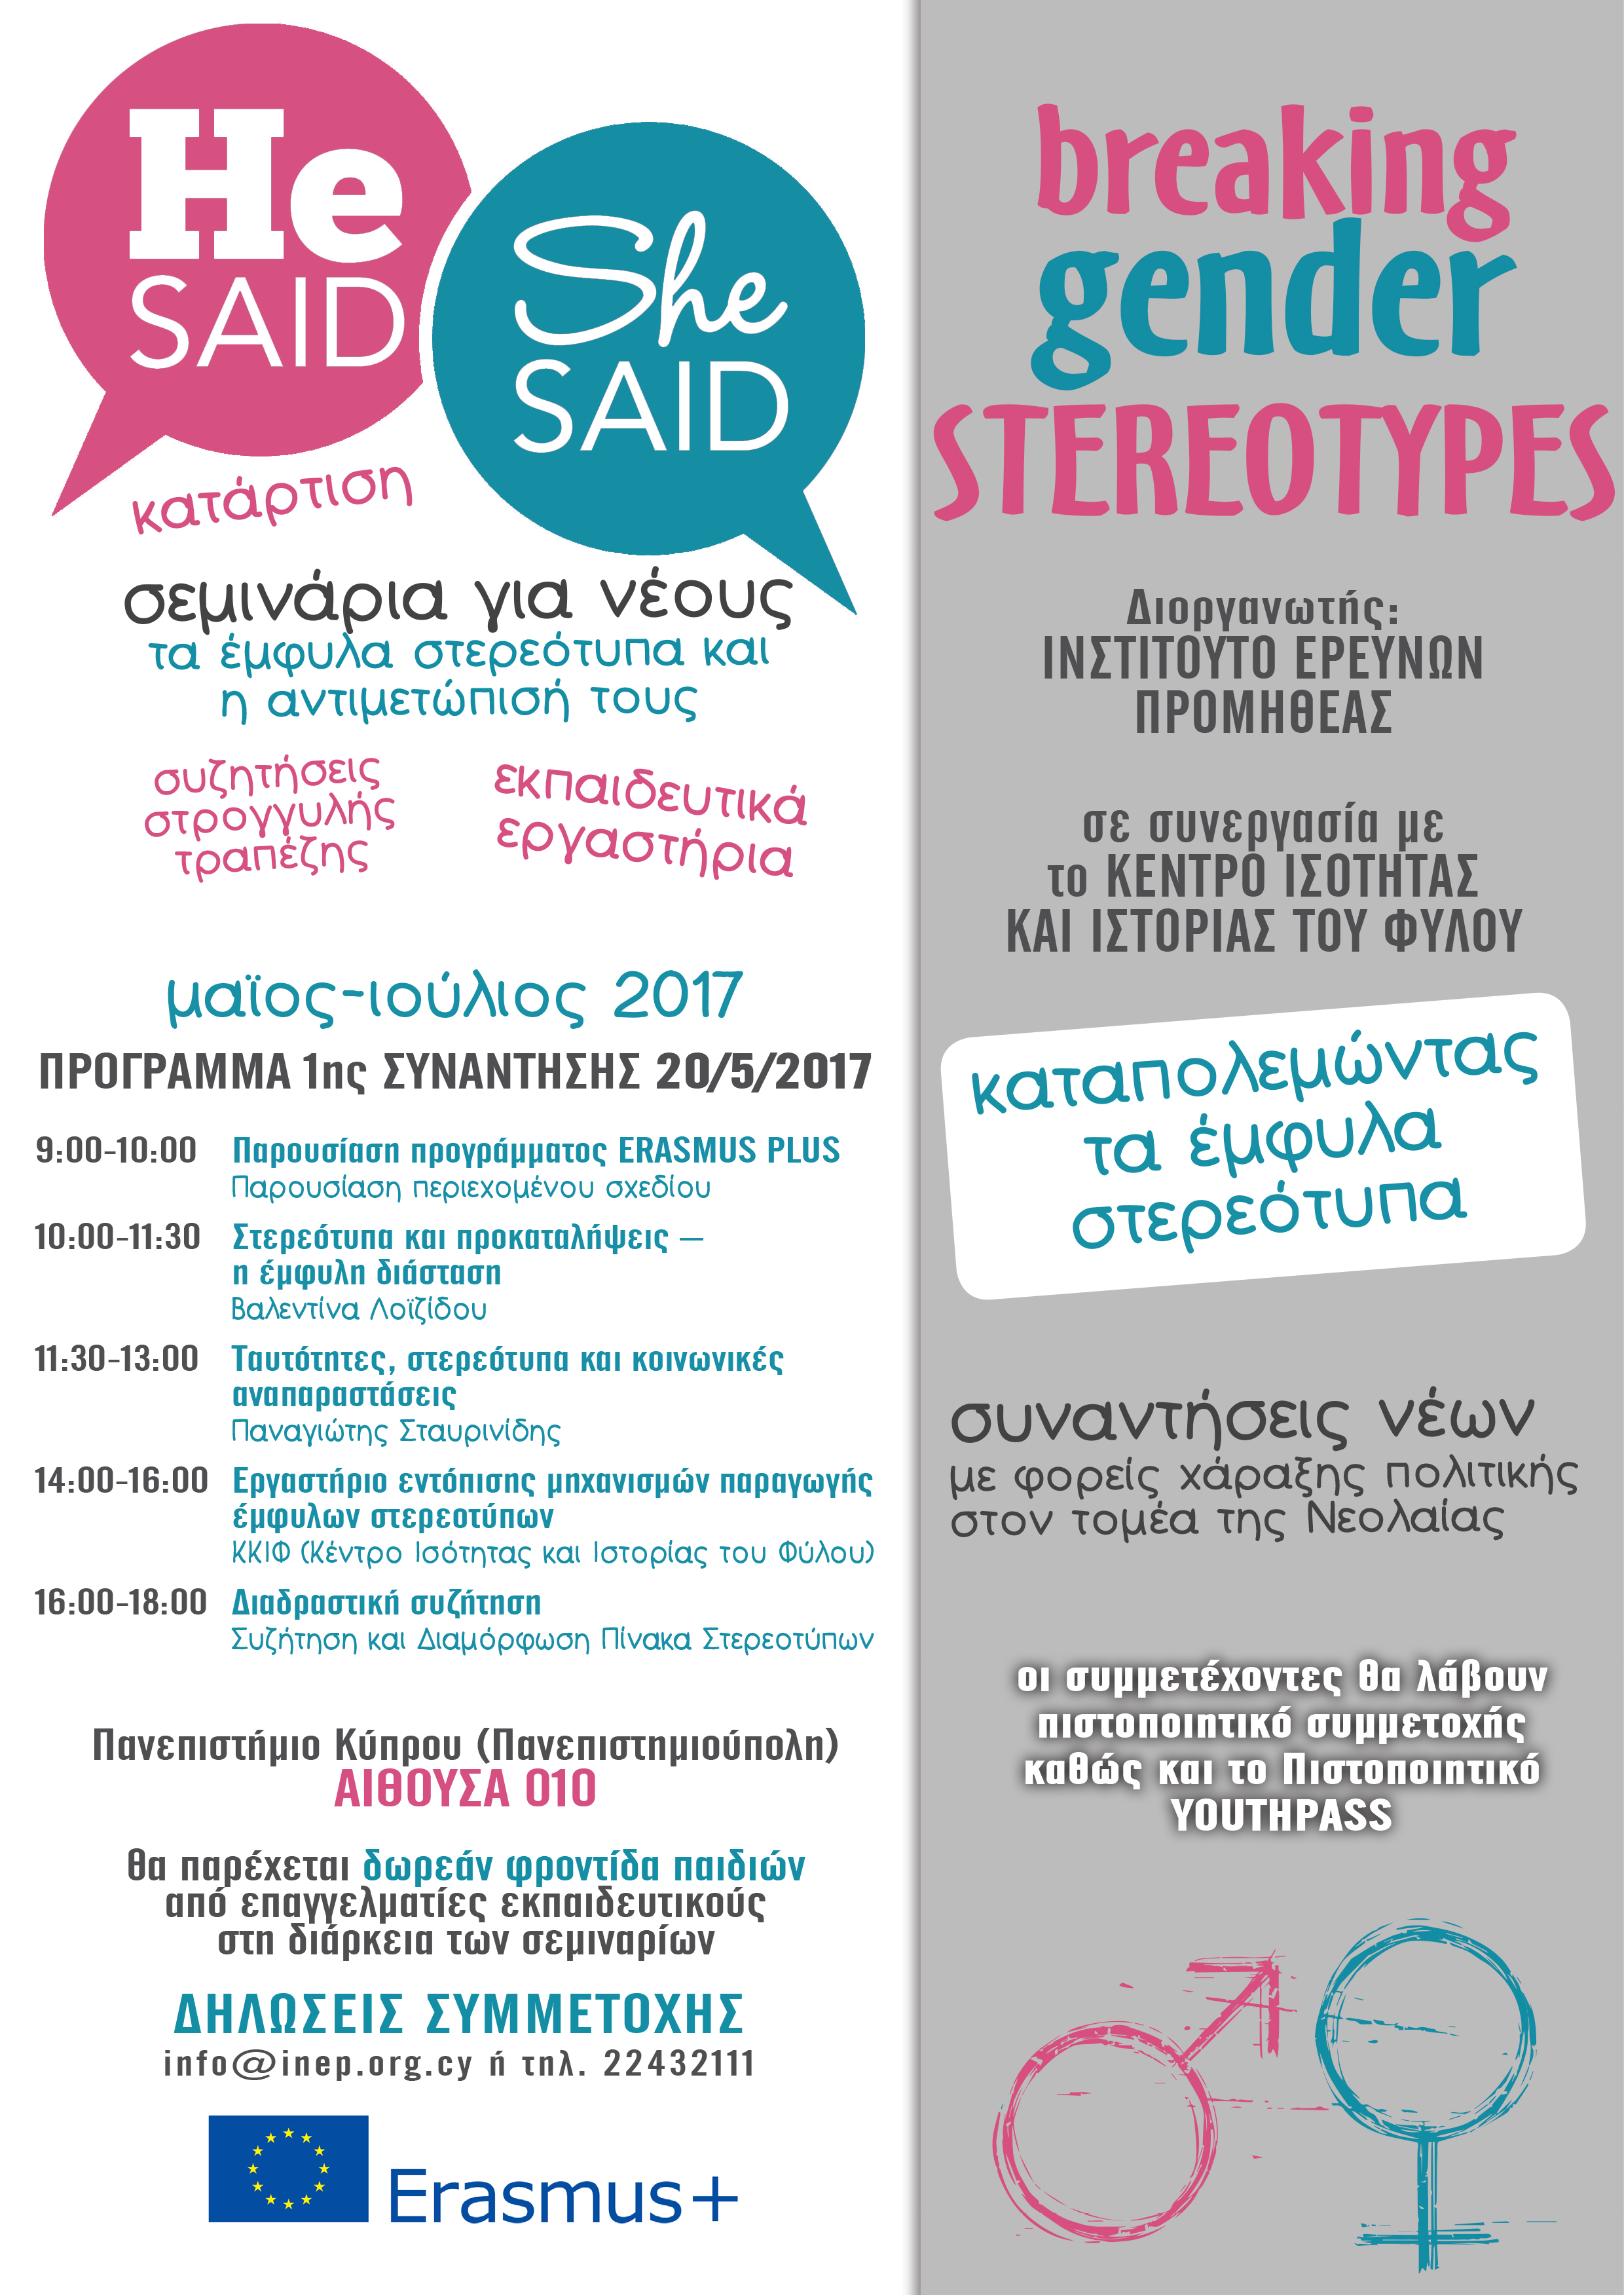 LEAFLET WITH WORDS ΣΥΝΑΝΤΗΣΗ 1